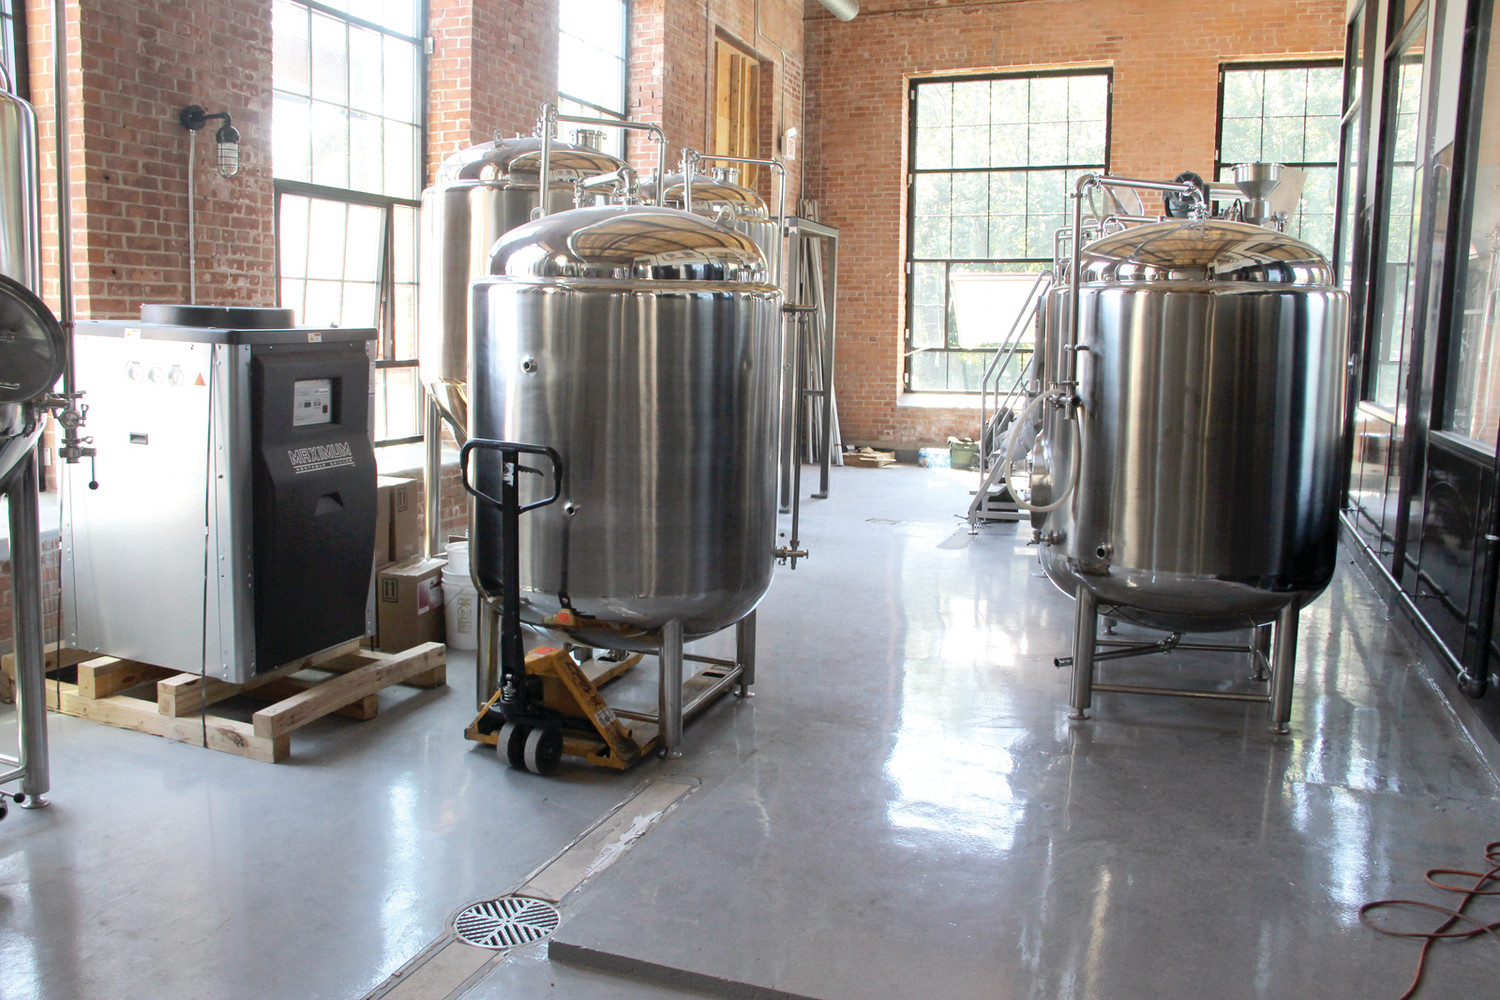 SOMETHING'S BREWIN': Apponaug Brewing Company is raring to go, with their first brewing location already set up in a commercial space at the Mills. These fermentation tanks here can produce 310 gallons of beer. They hope to open before Labor Day.